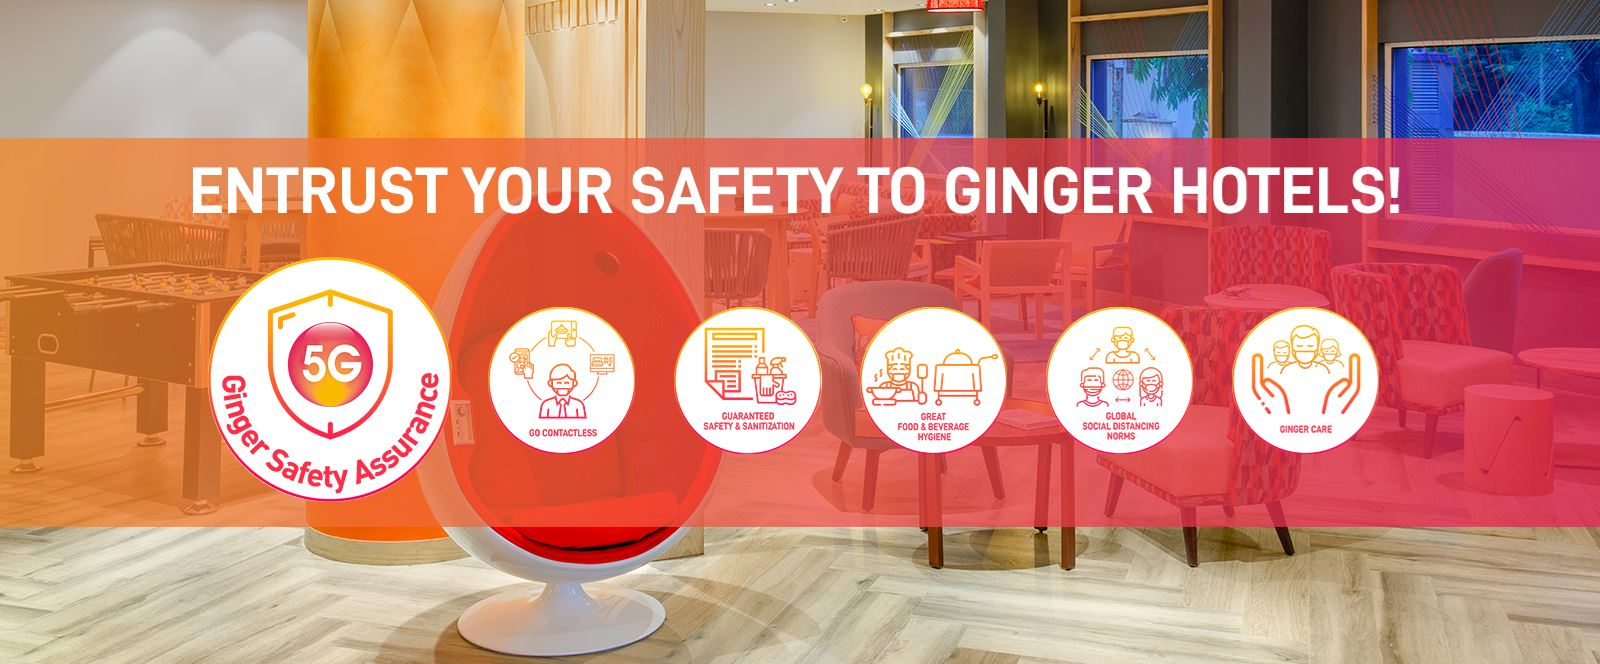 entrust-your-safety-to-ginger-hotels